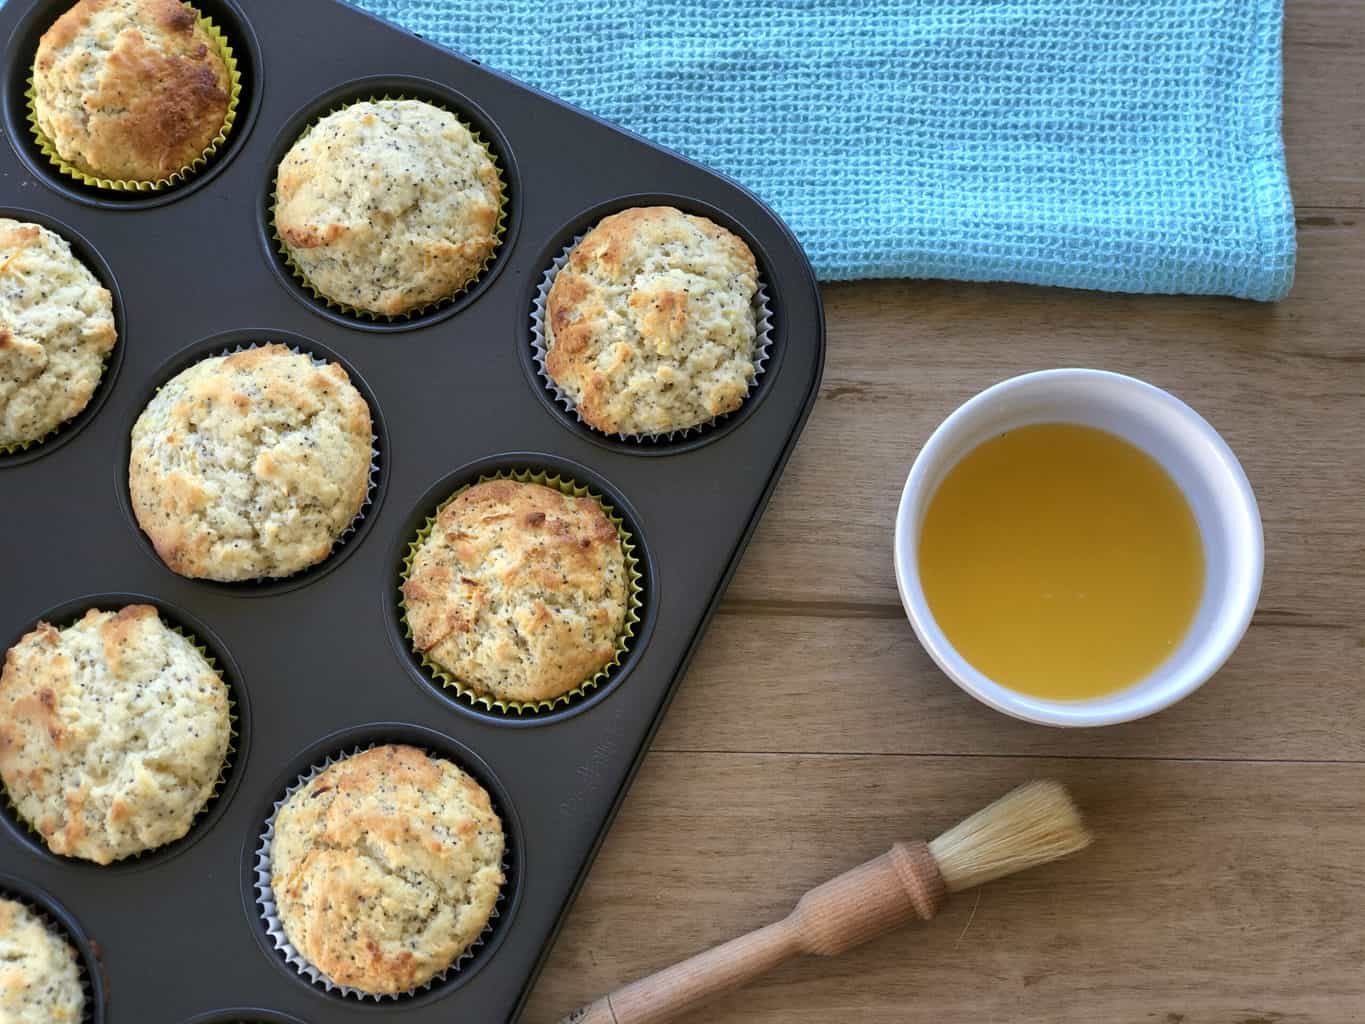 Freshly baked muffins in a muffin tin with a sugar lemon glaze prepared and a pastry brush